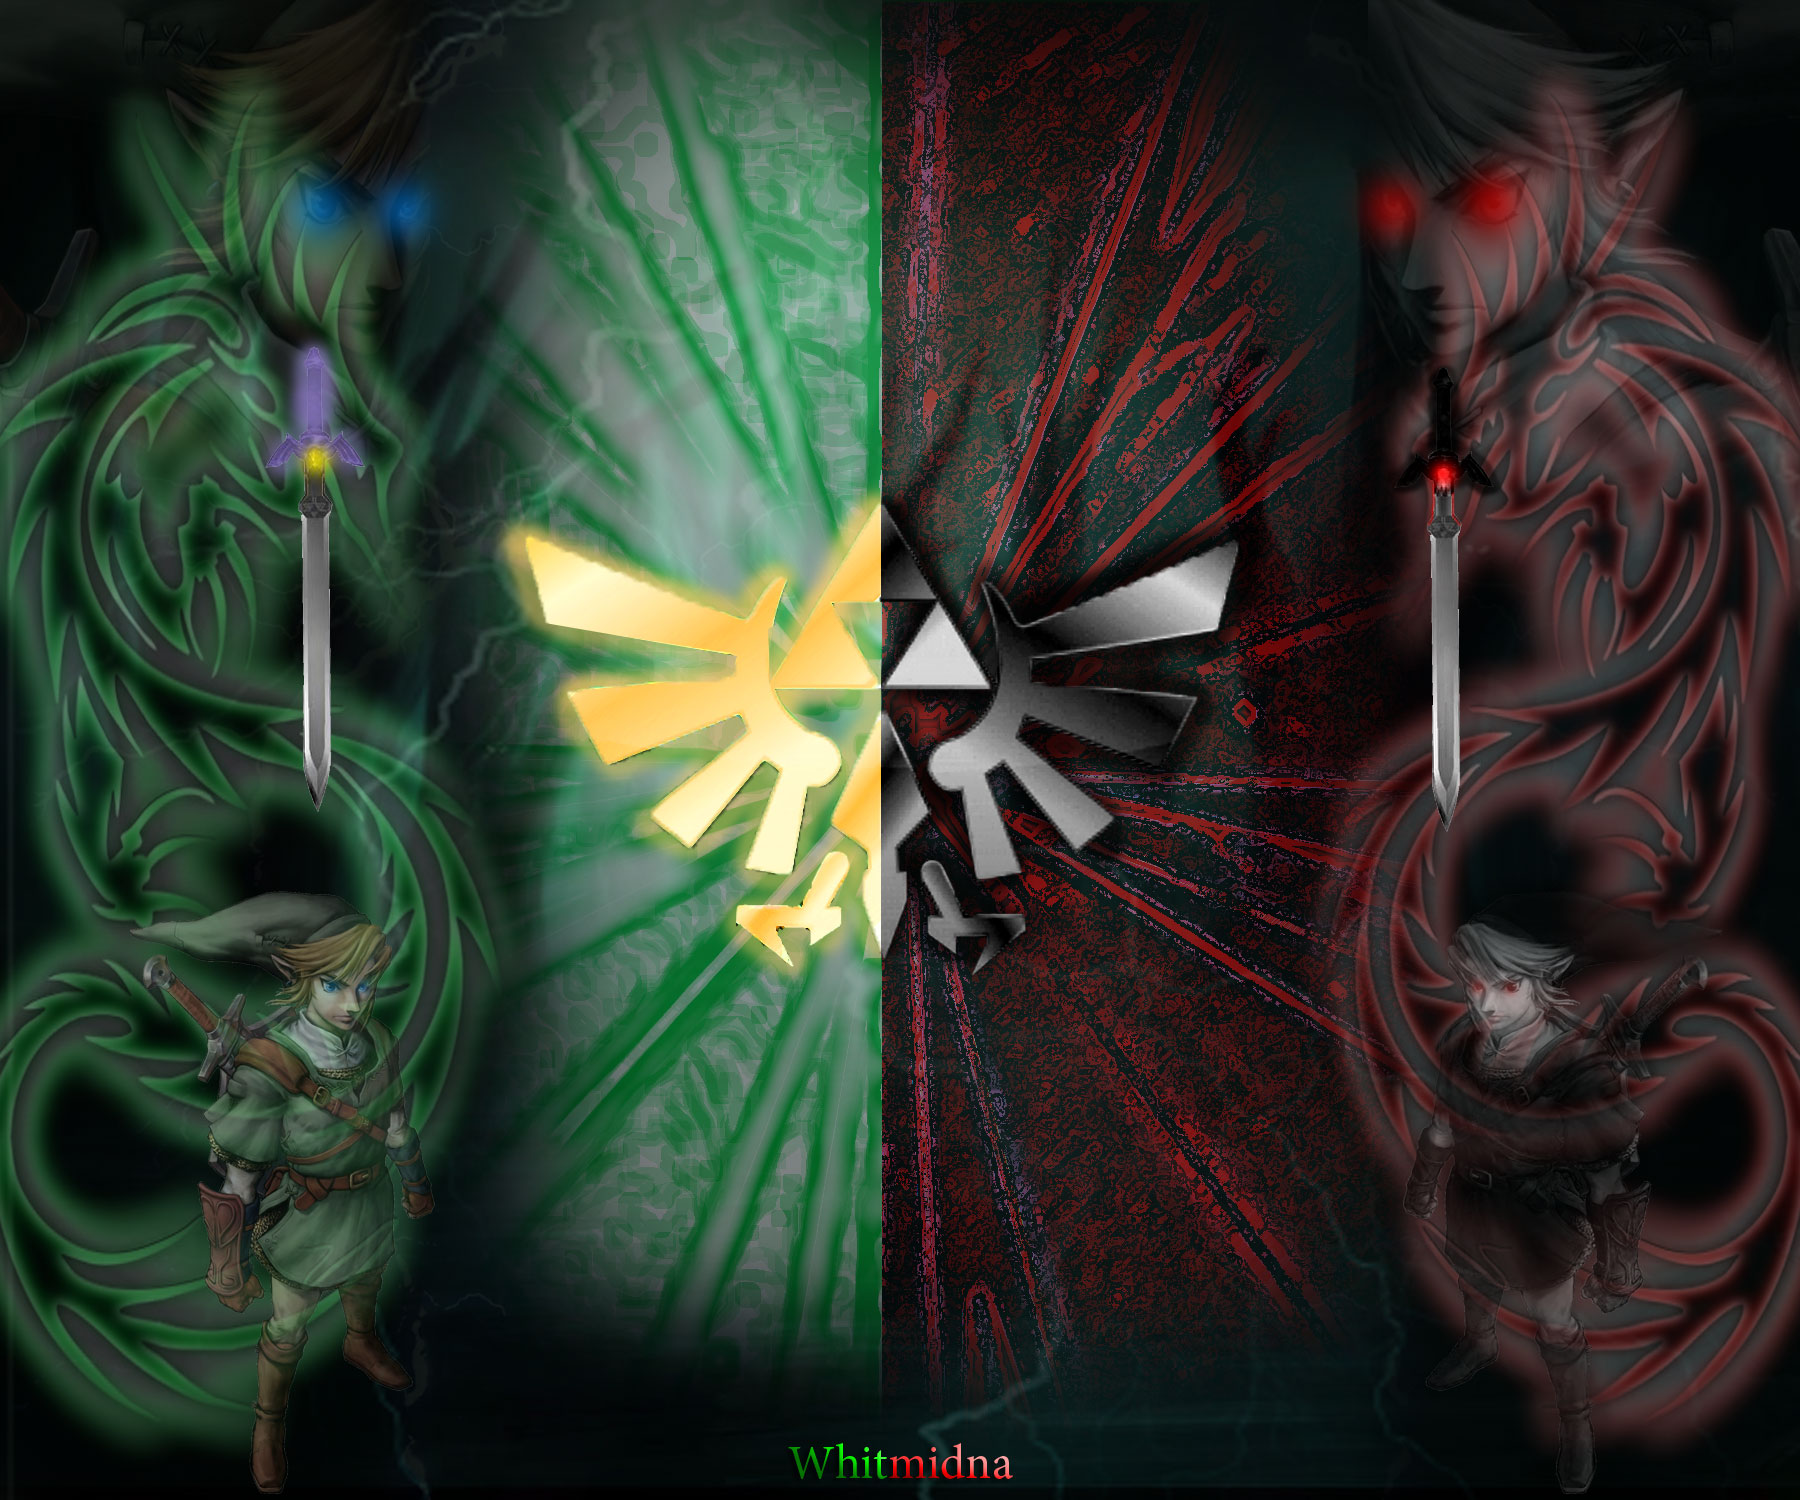 Link And Dark Link Link vs dark link background 1800x1500